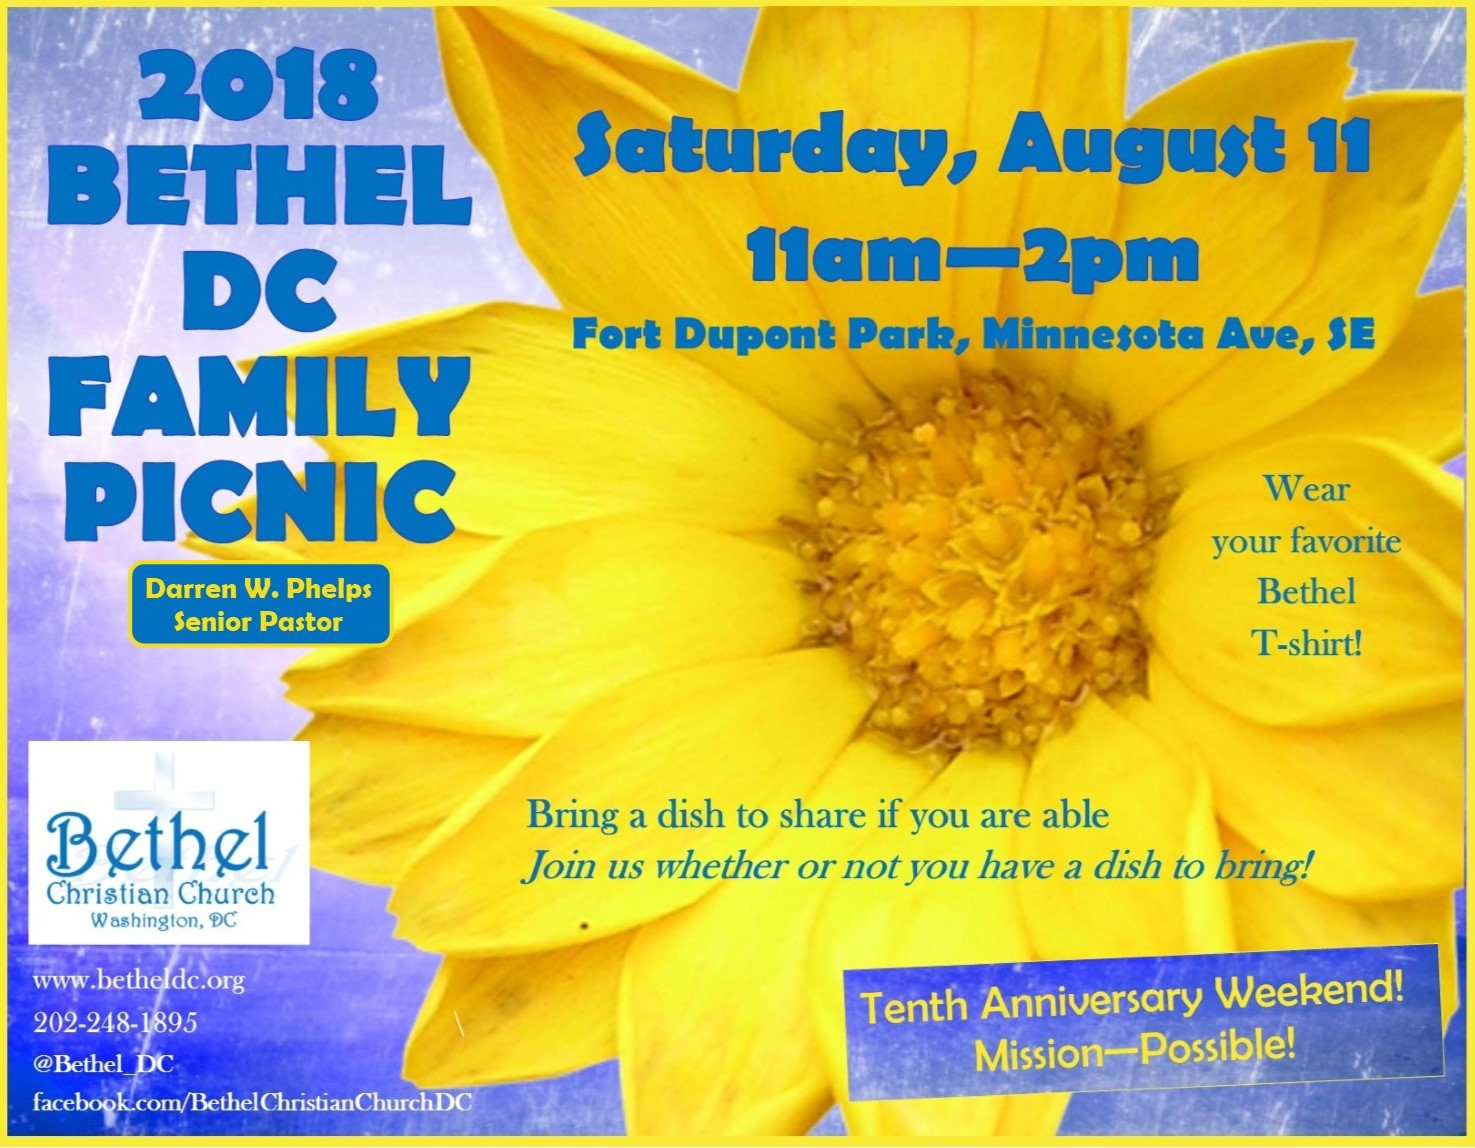 Join us for the Bethel DC Family picnic on Saturday August 11, 11am-2pm at Fort Dupont Park.